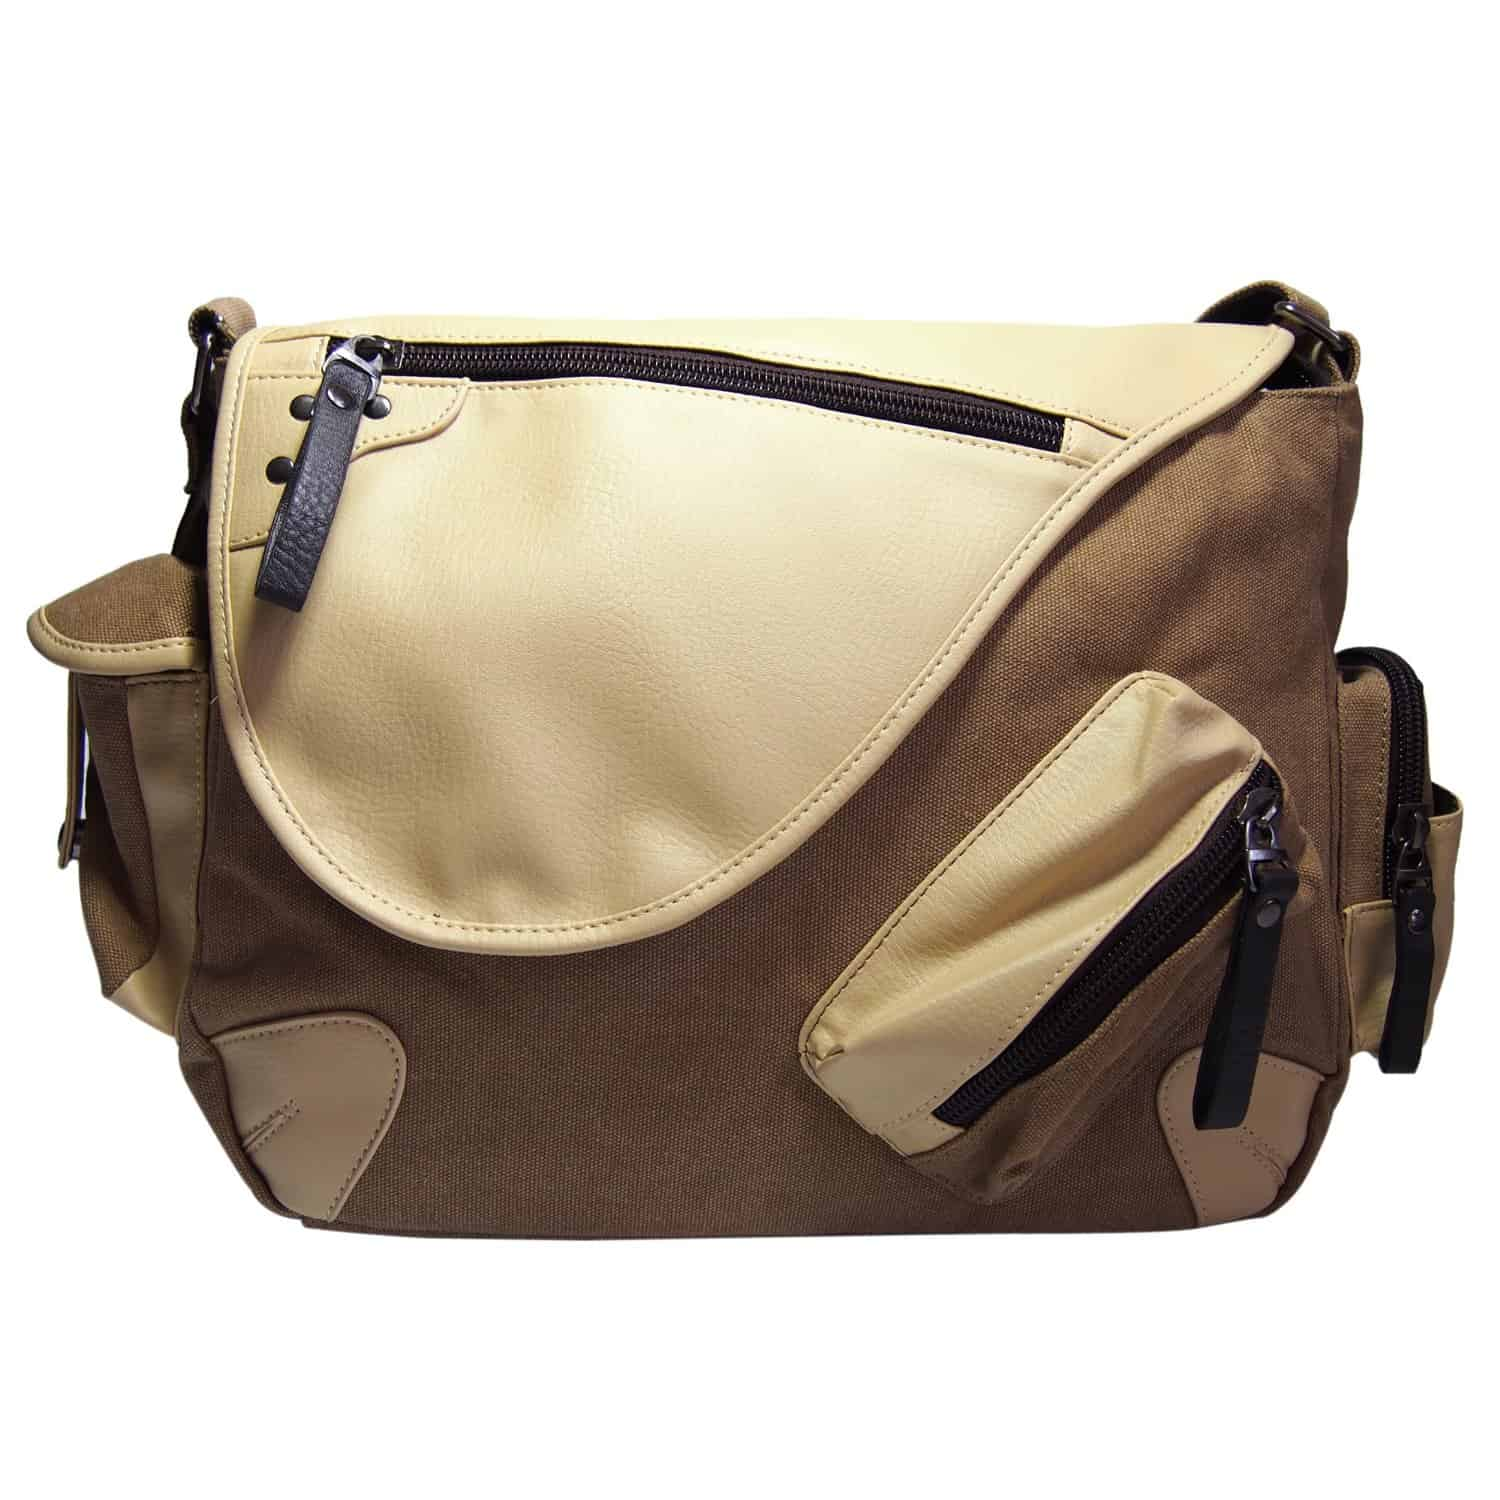 Samic Classic Vintage Canvas PU Leather Messenger Bag Review